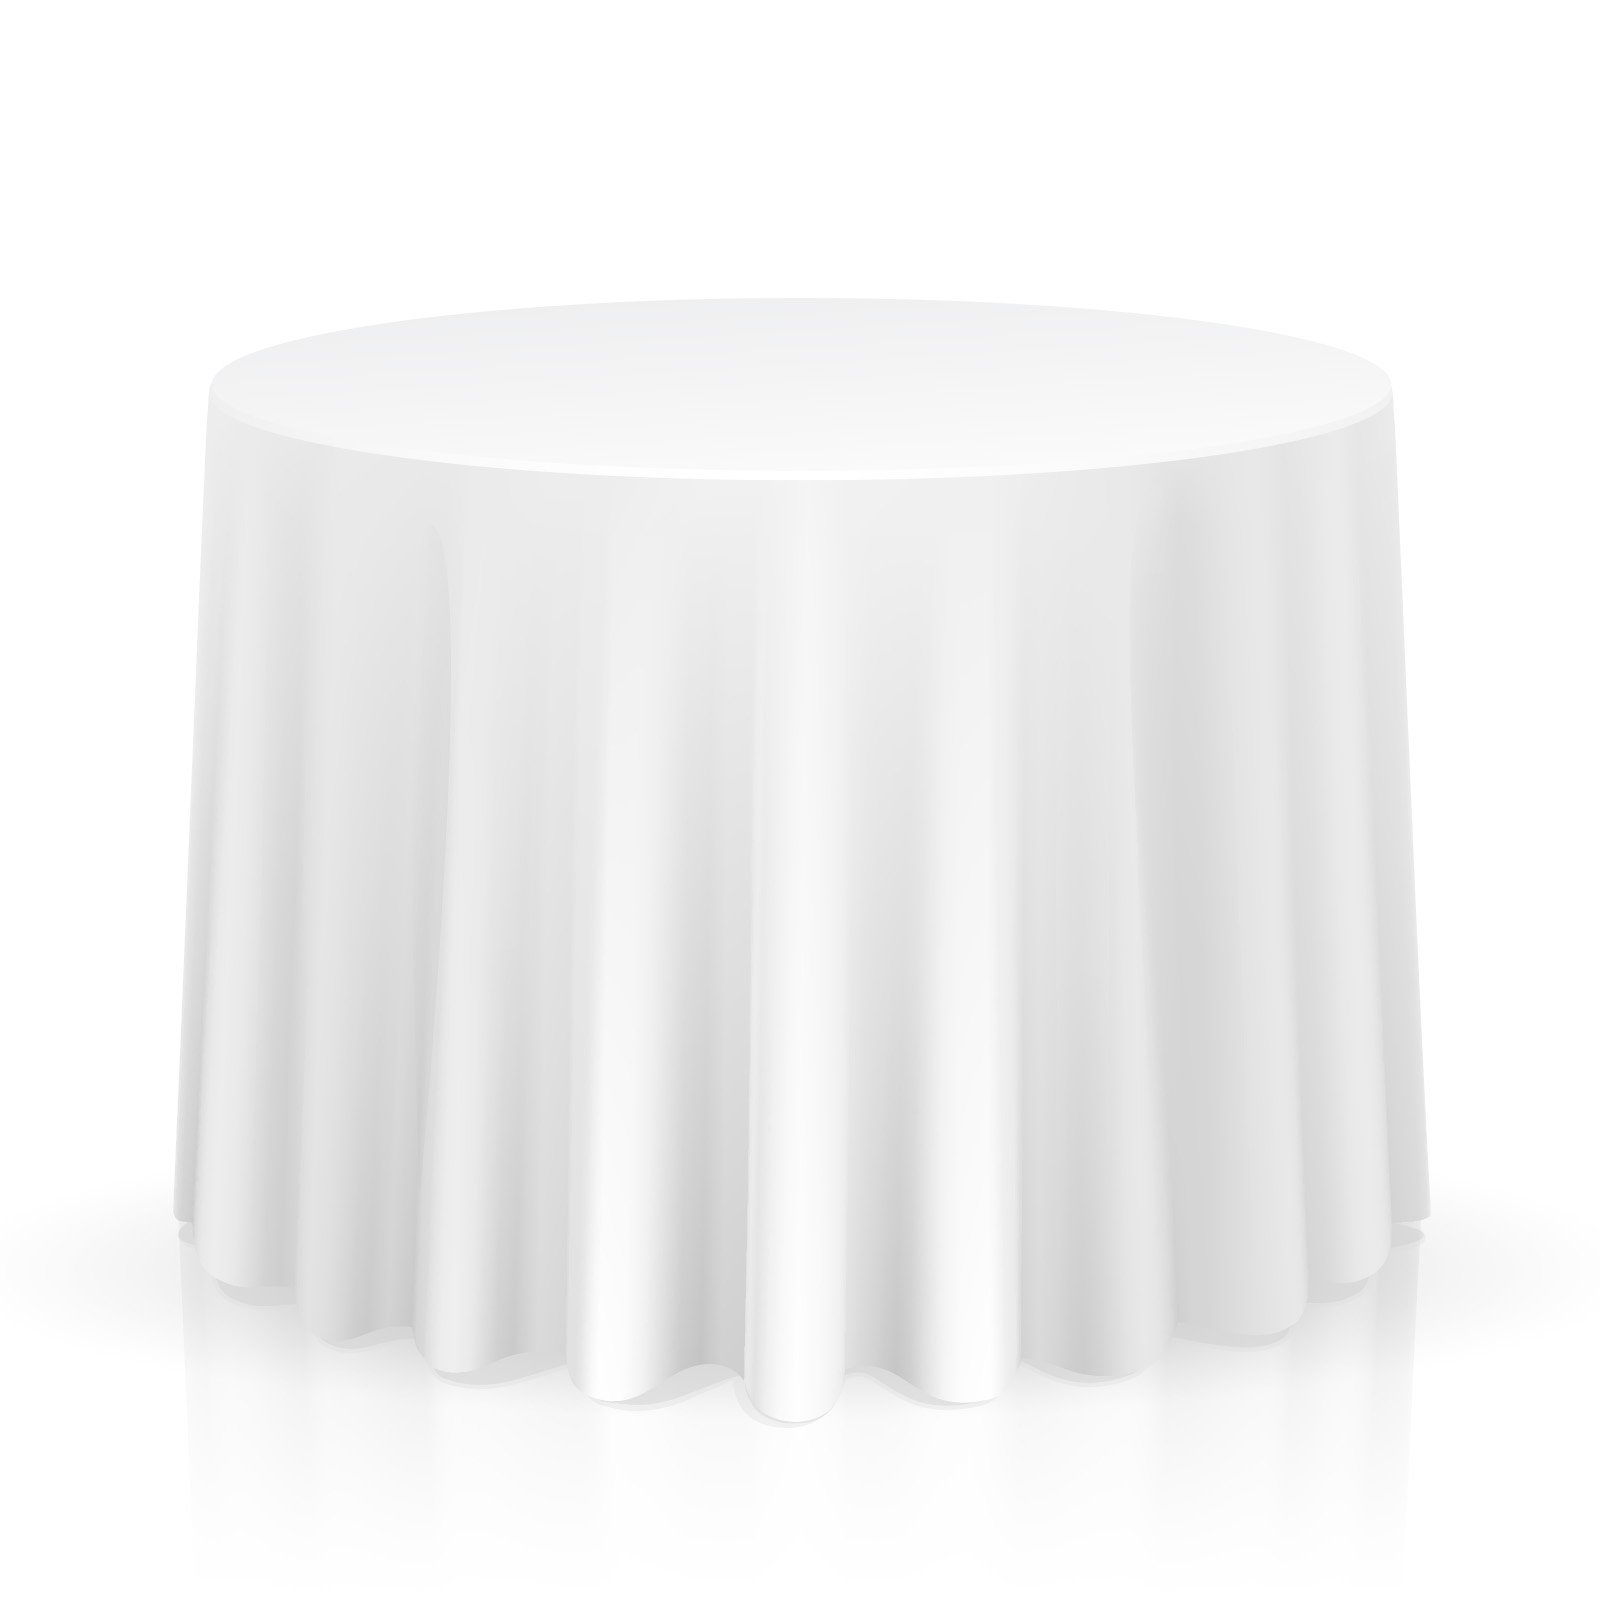 Lann's Linens - 10 Premium 90'' Round Tablecloths for Wedding/Banquet/Restaurant - Polyester Fabric Table Cloths - White